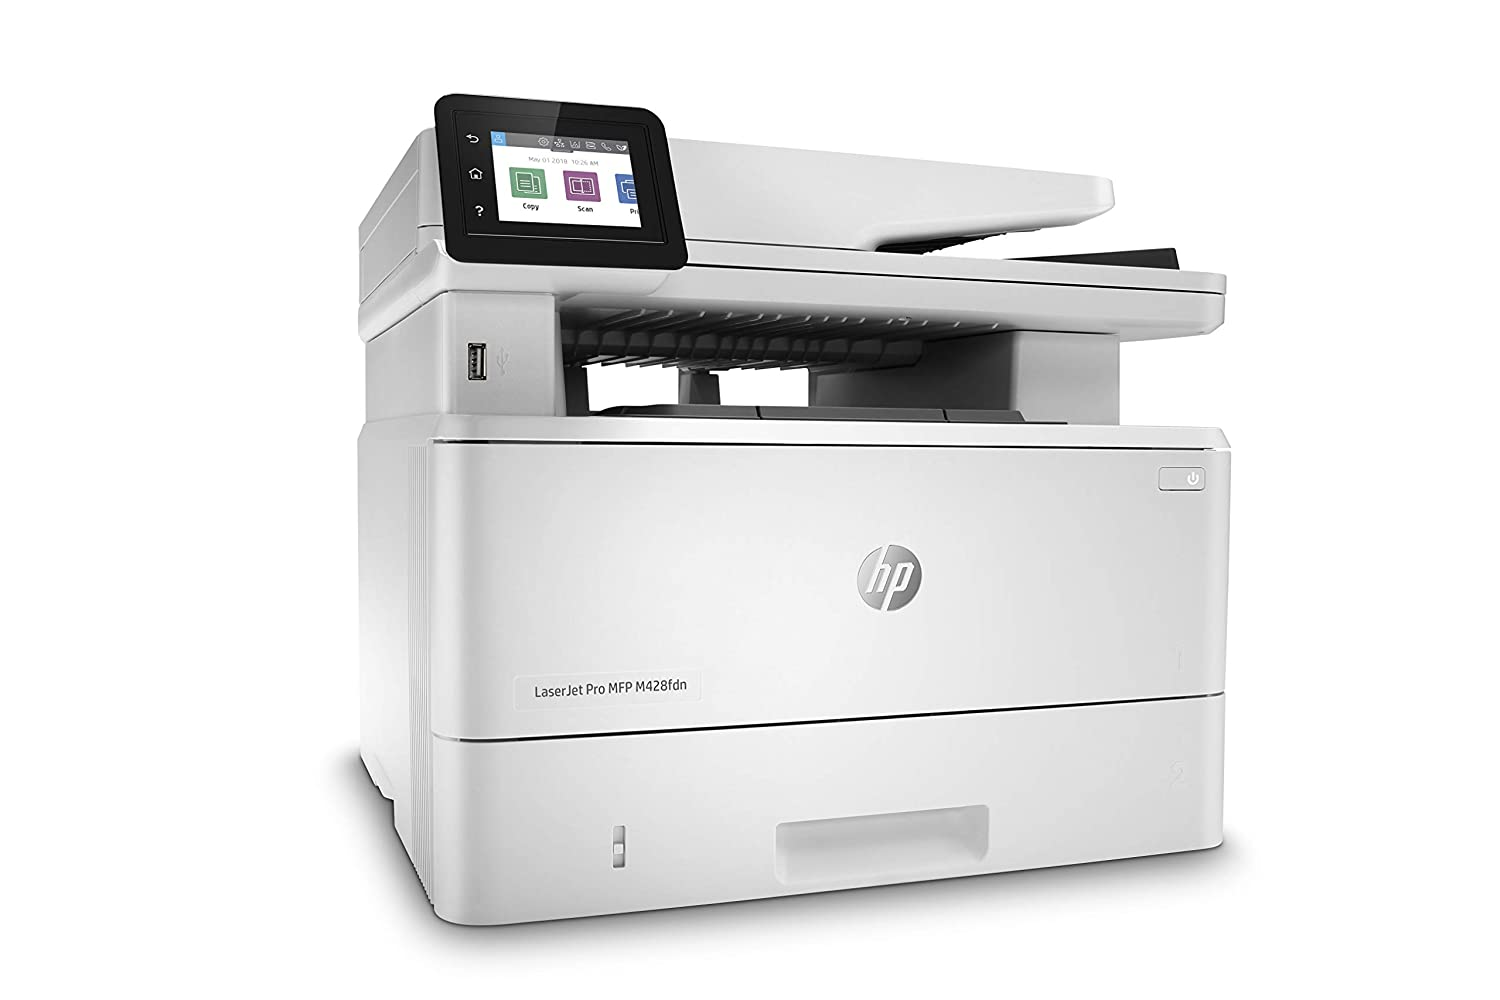 HP LaserJet Pro Multifunction M428fdn Laser Printer (W1A29A) – Ethernet only